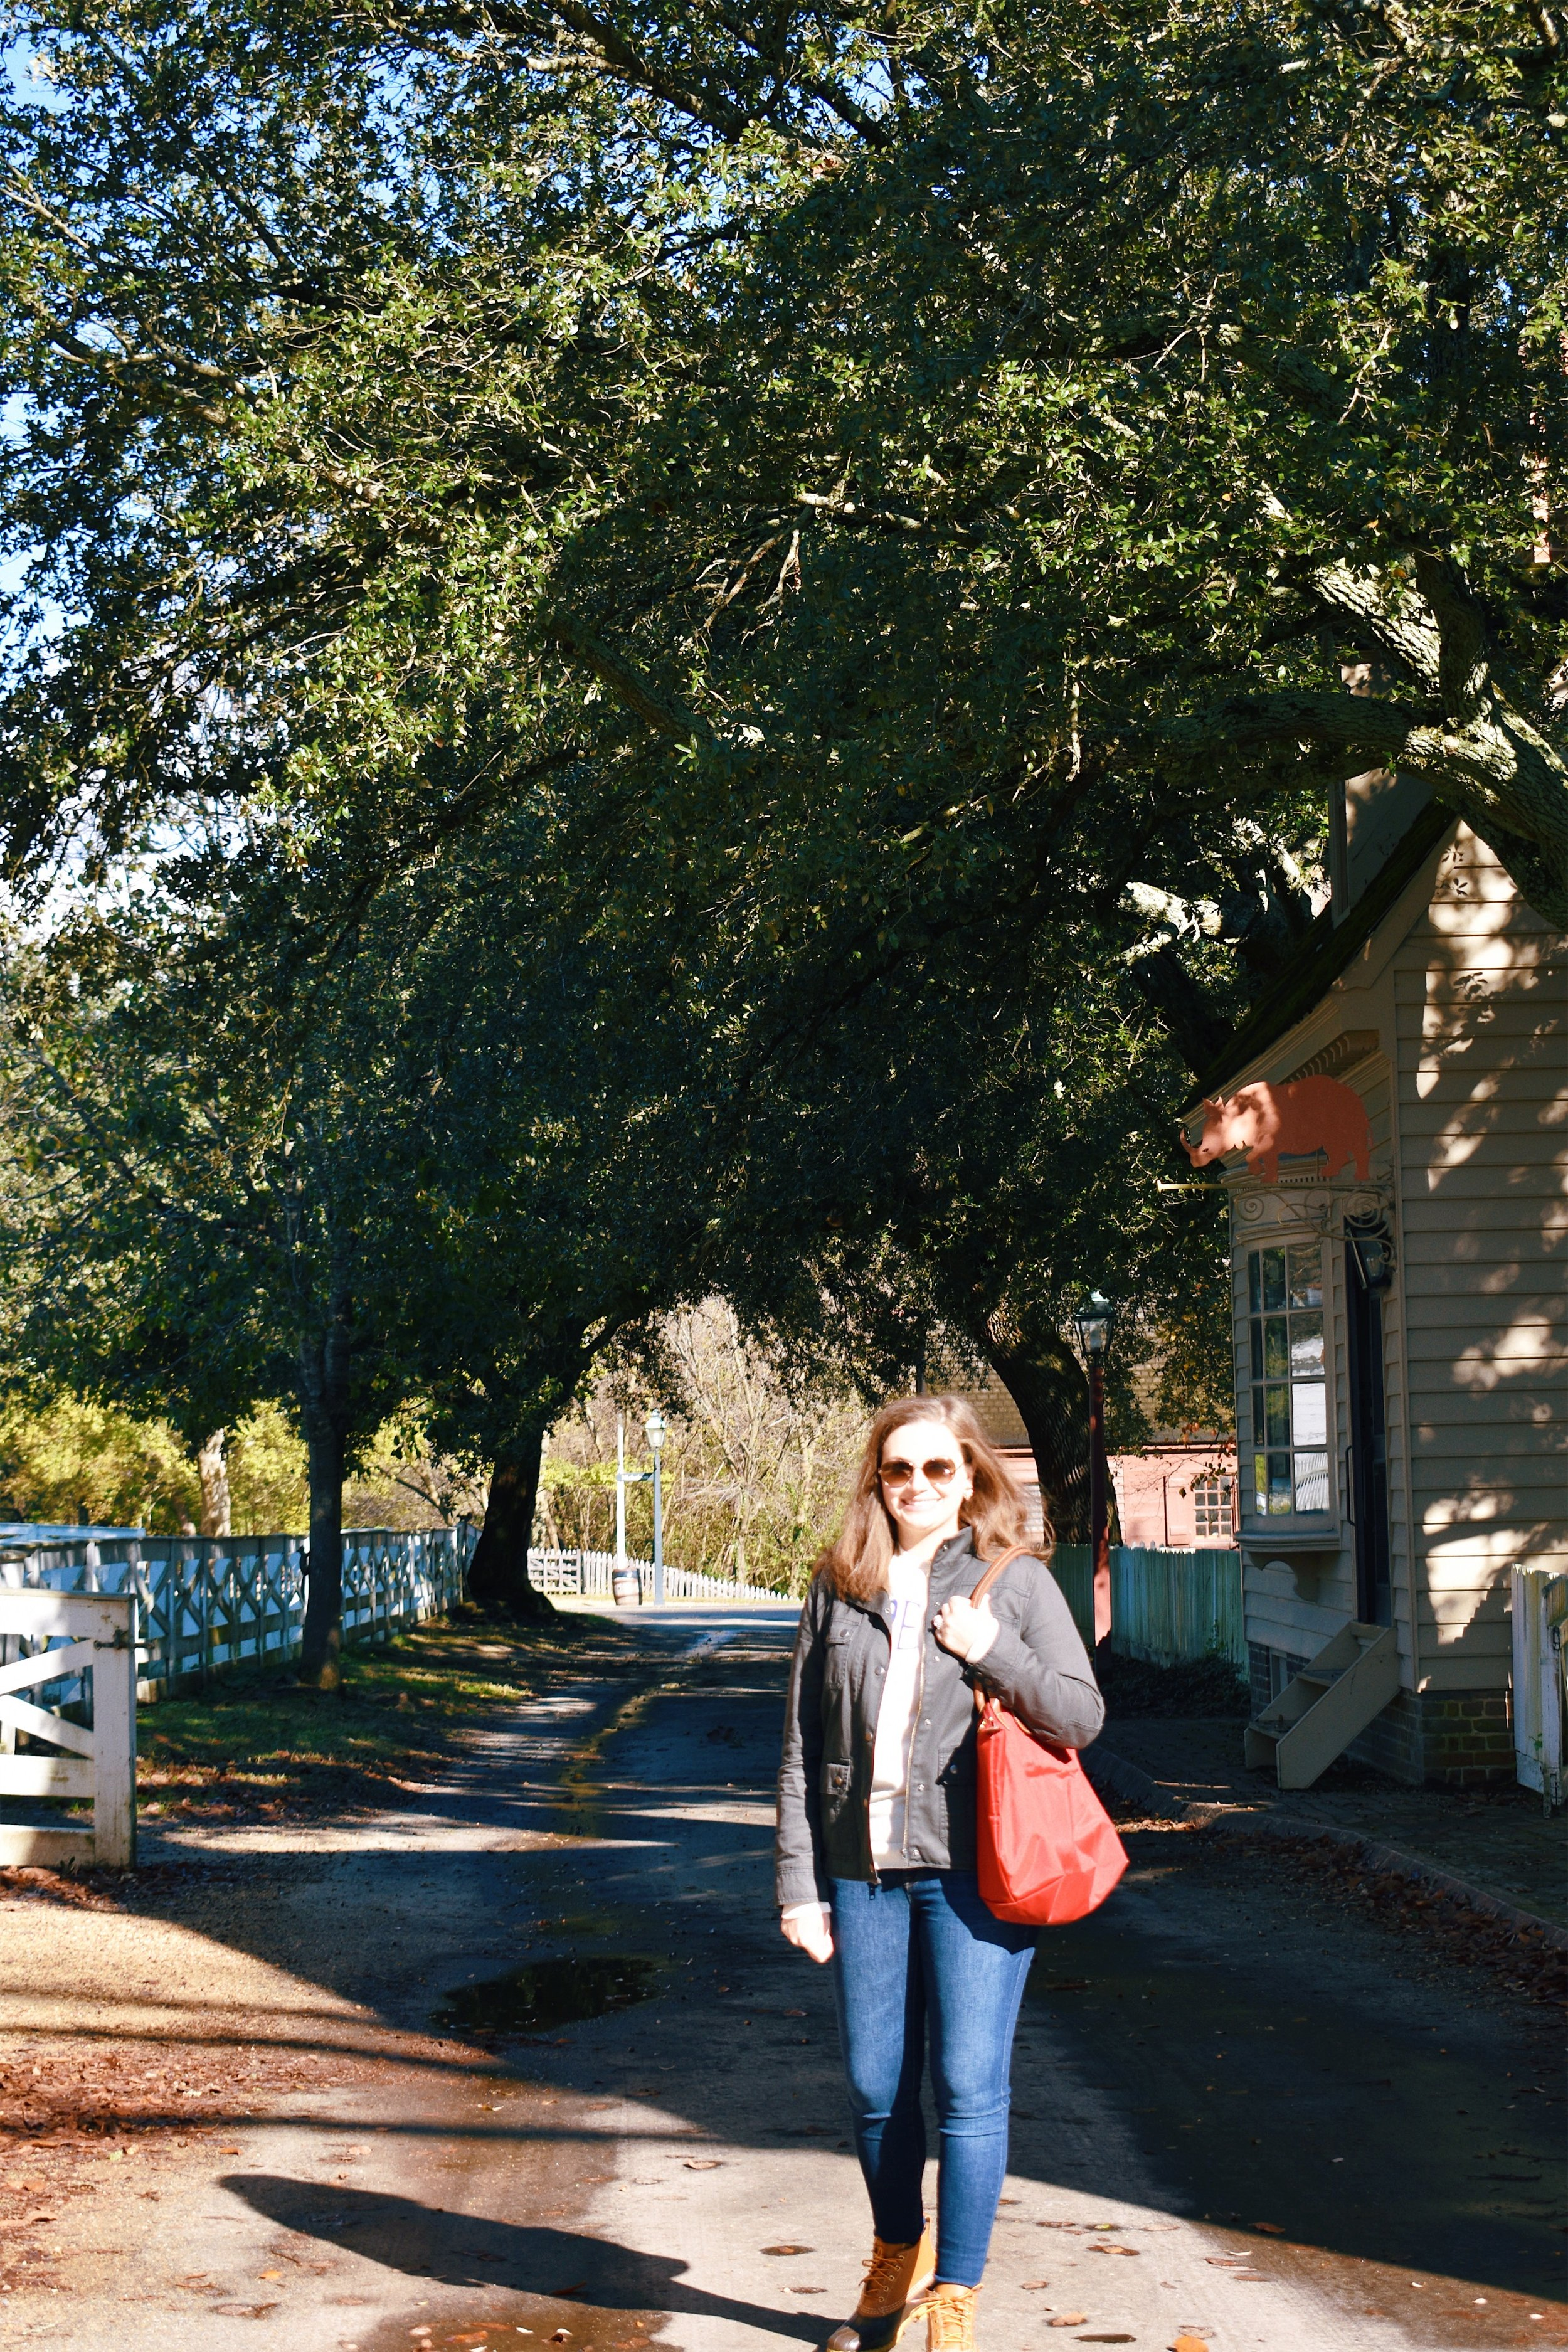 A day in Colonial Williamsburg